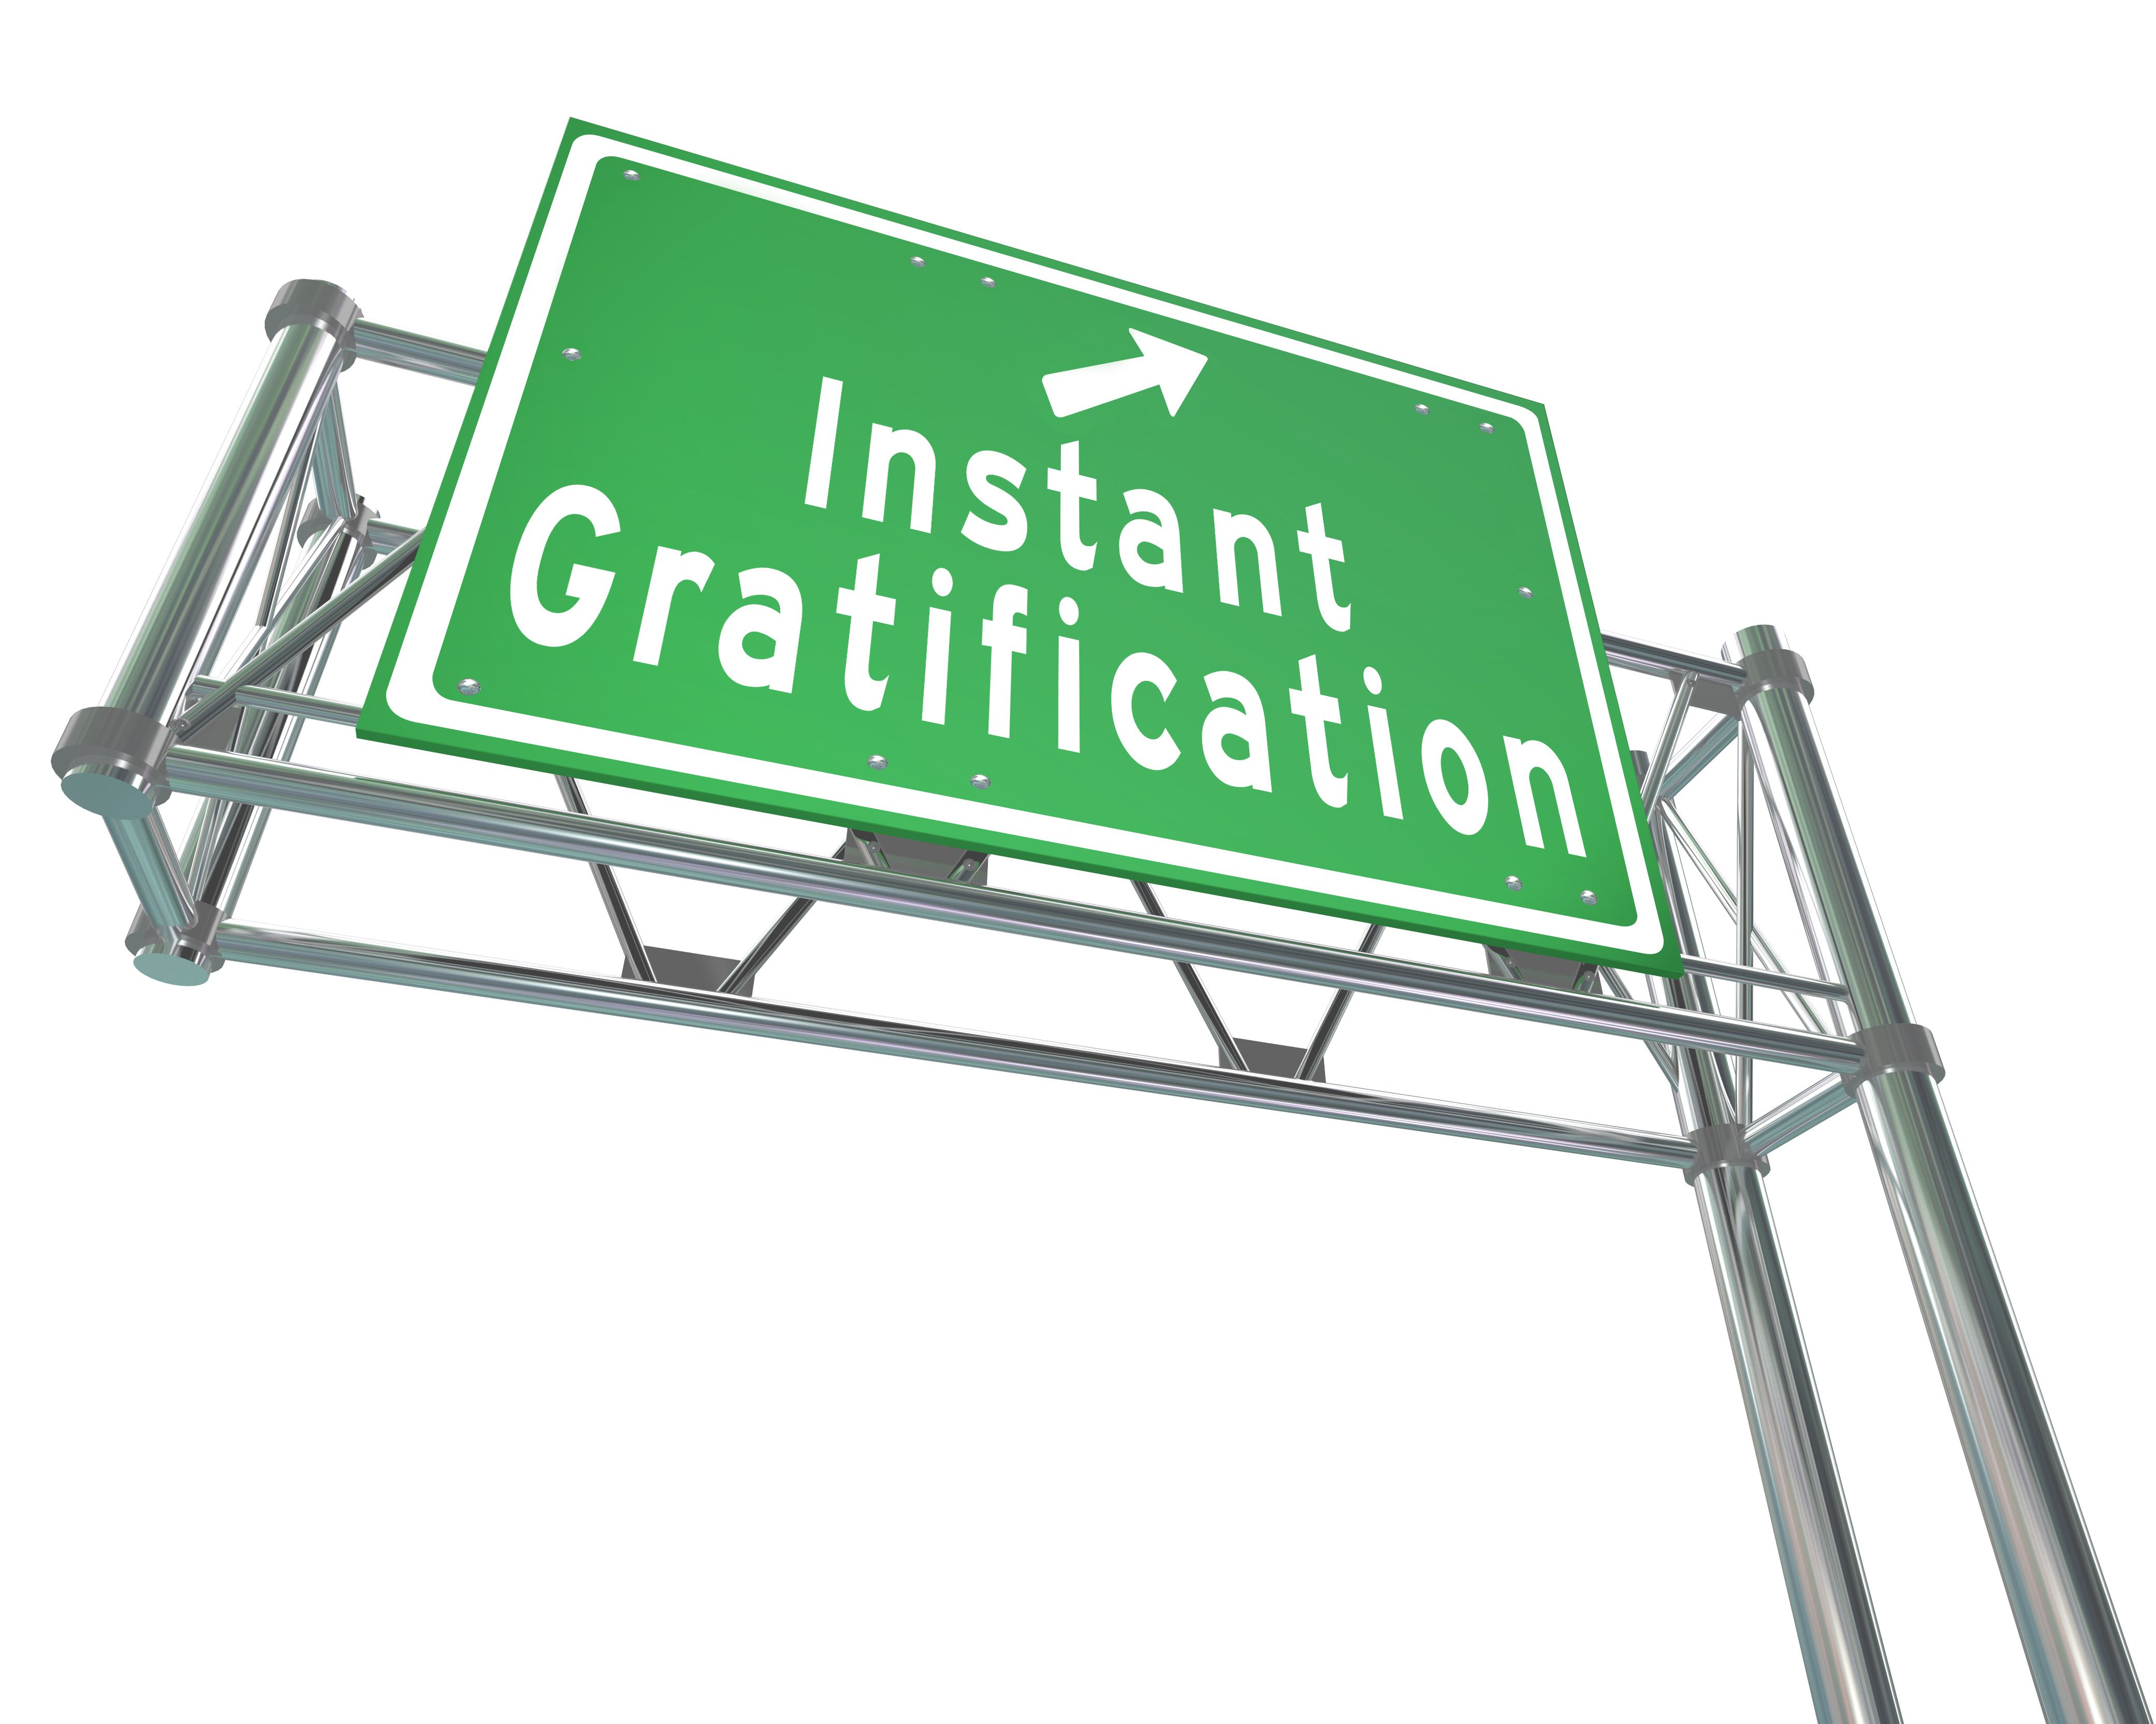 Oh yeah, instant gratification, bring it on! Recently I